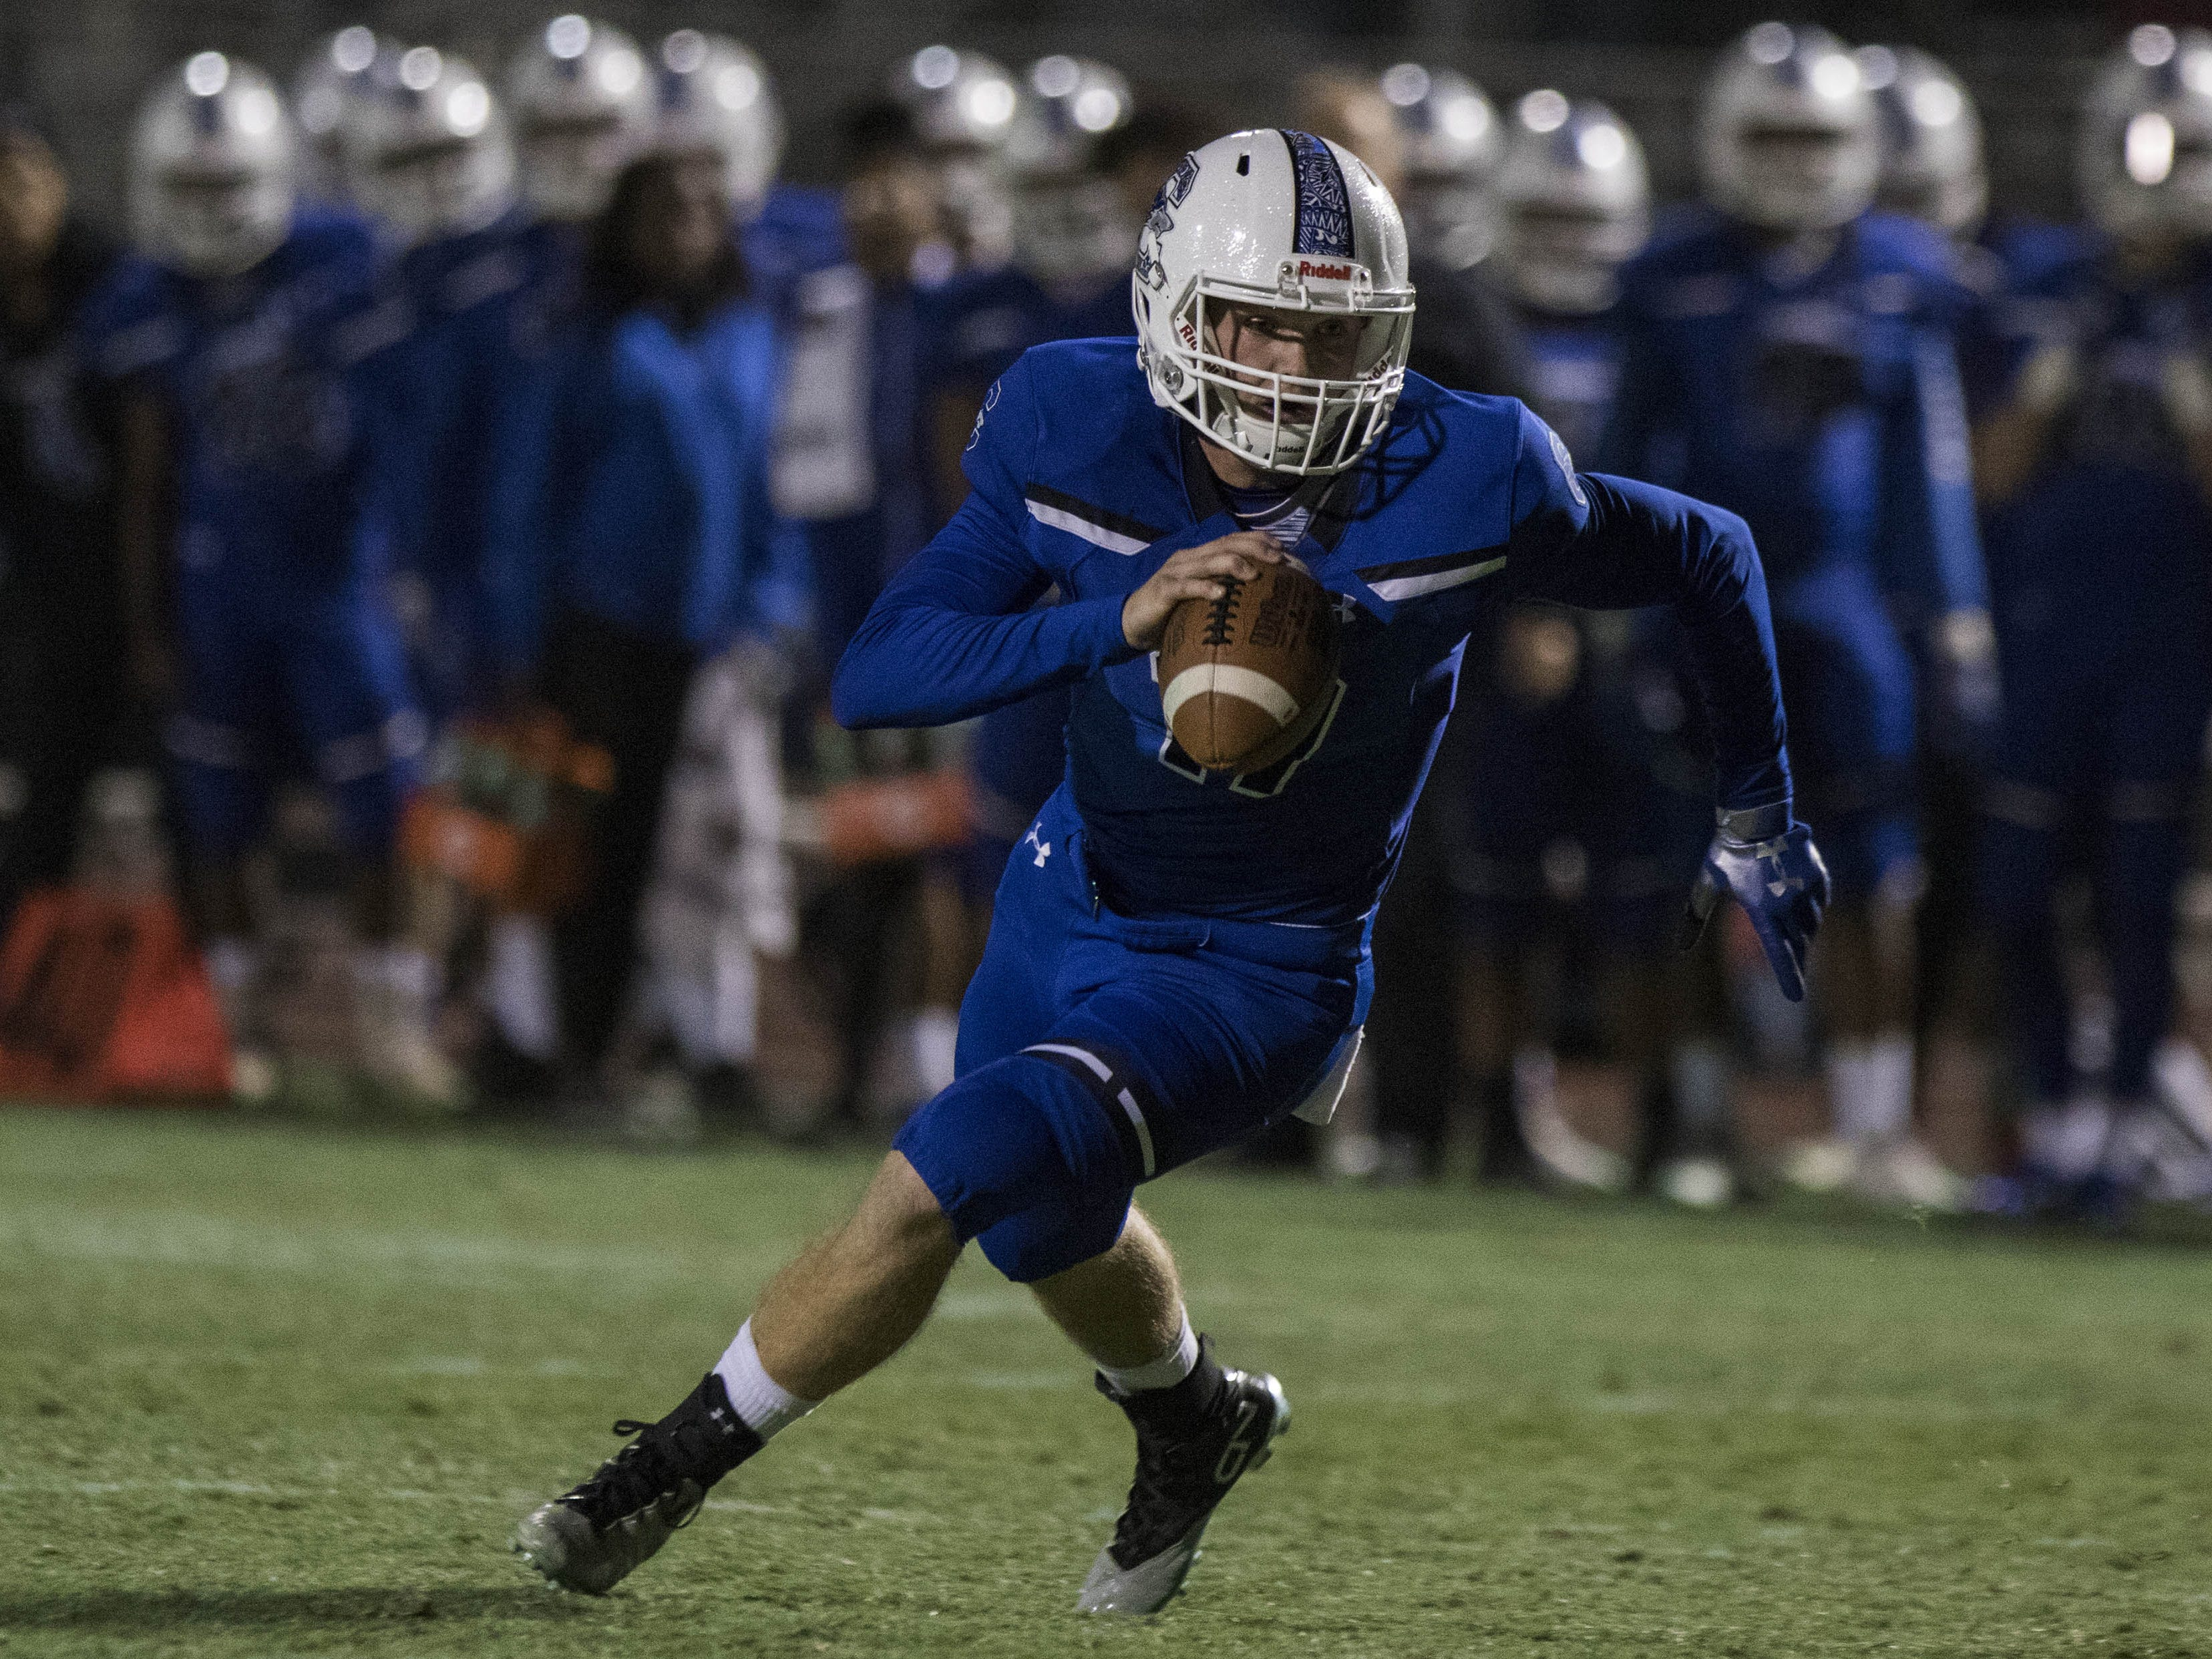 Chandler's Jacob Conover looks to run against Highland's  defense during their game in Chandler Friday, Nov.16, 2018. #azhsfb